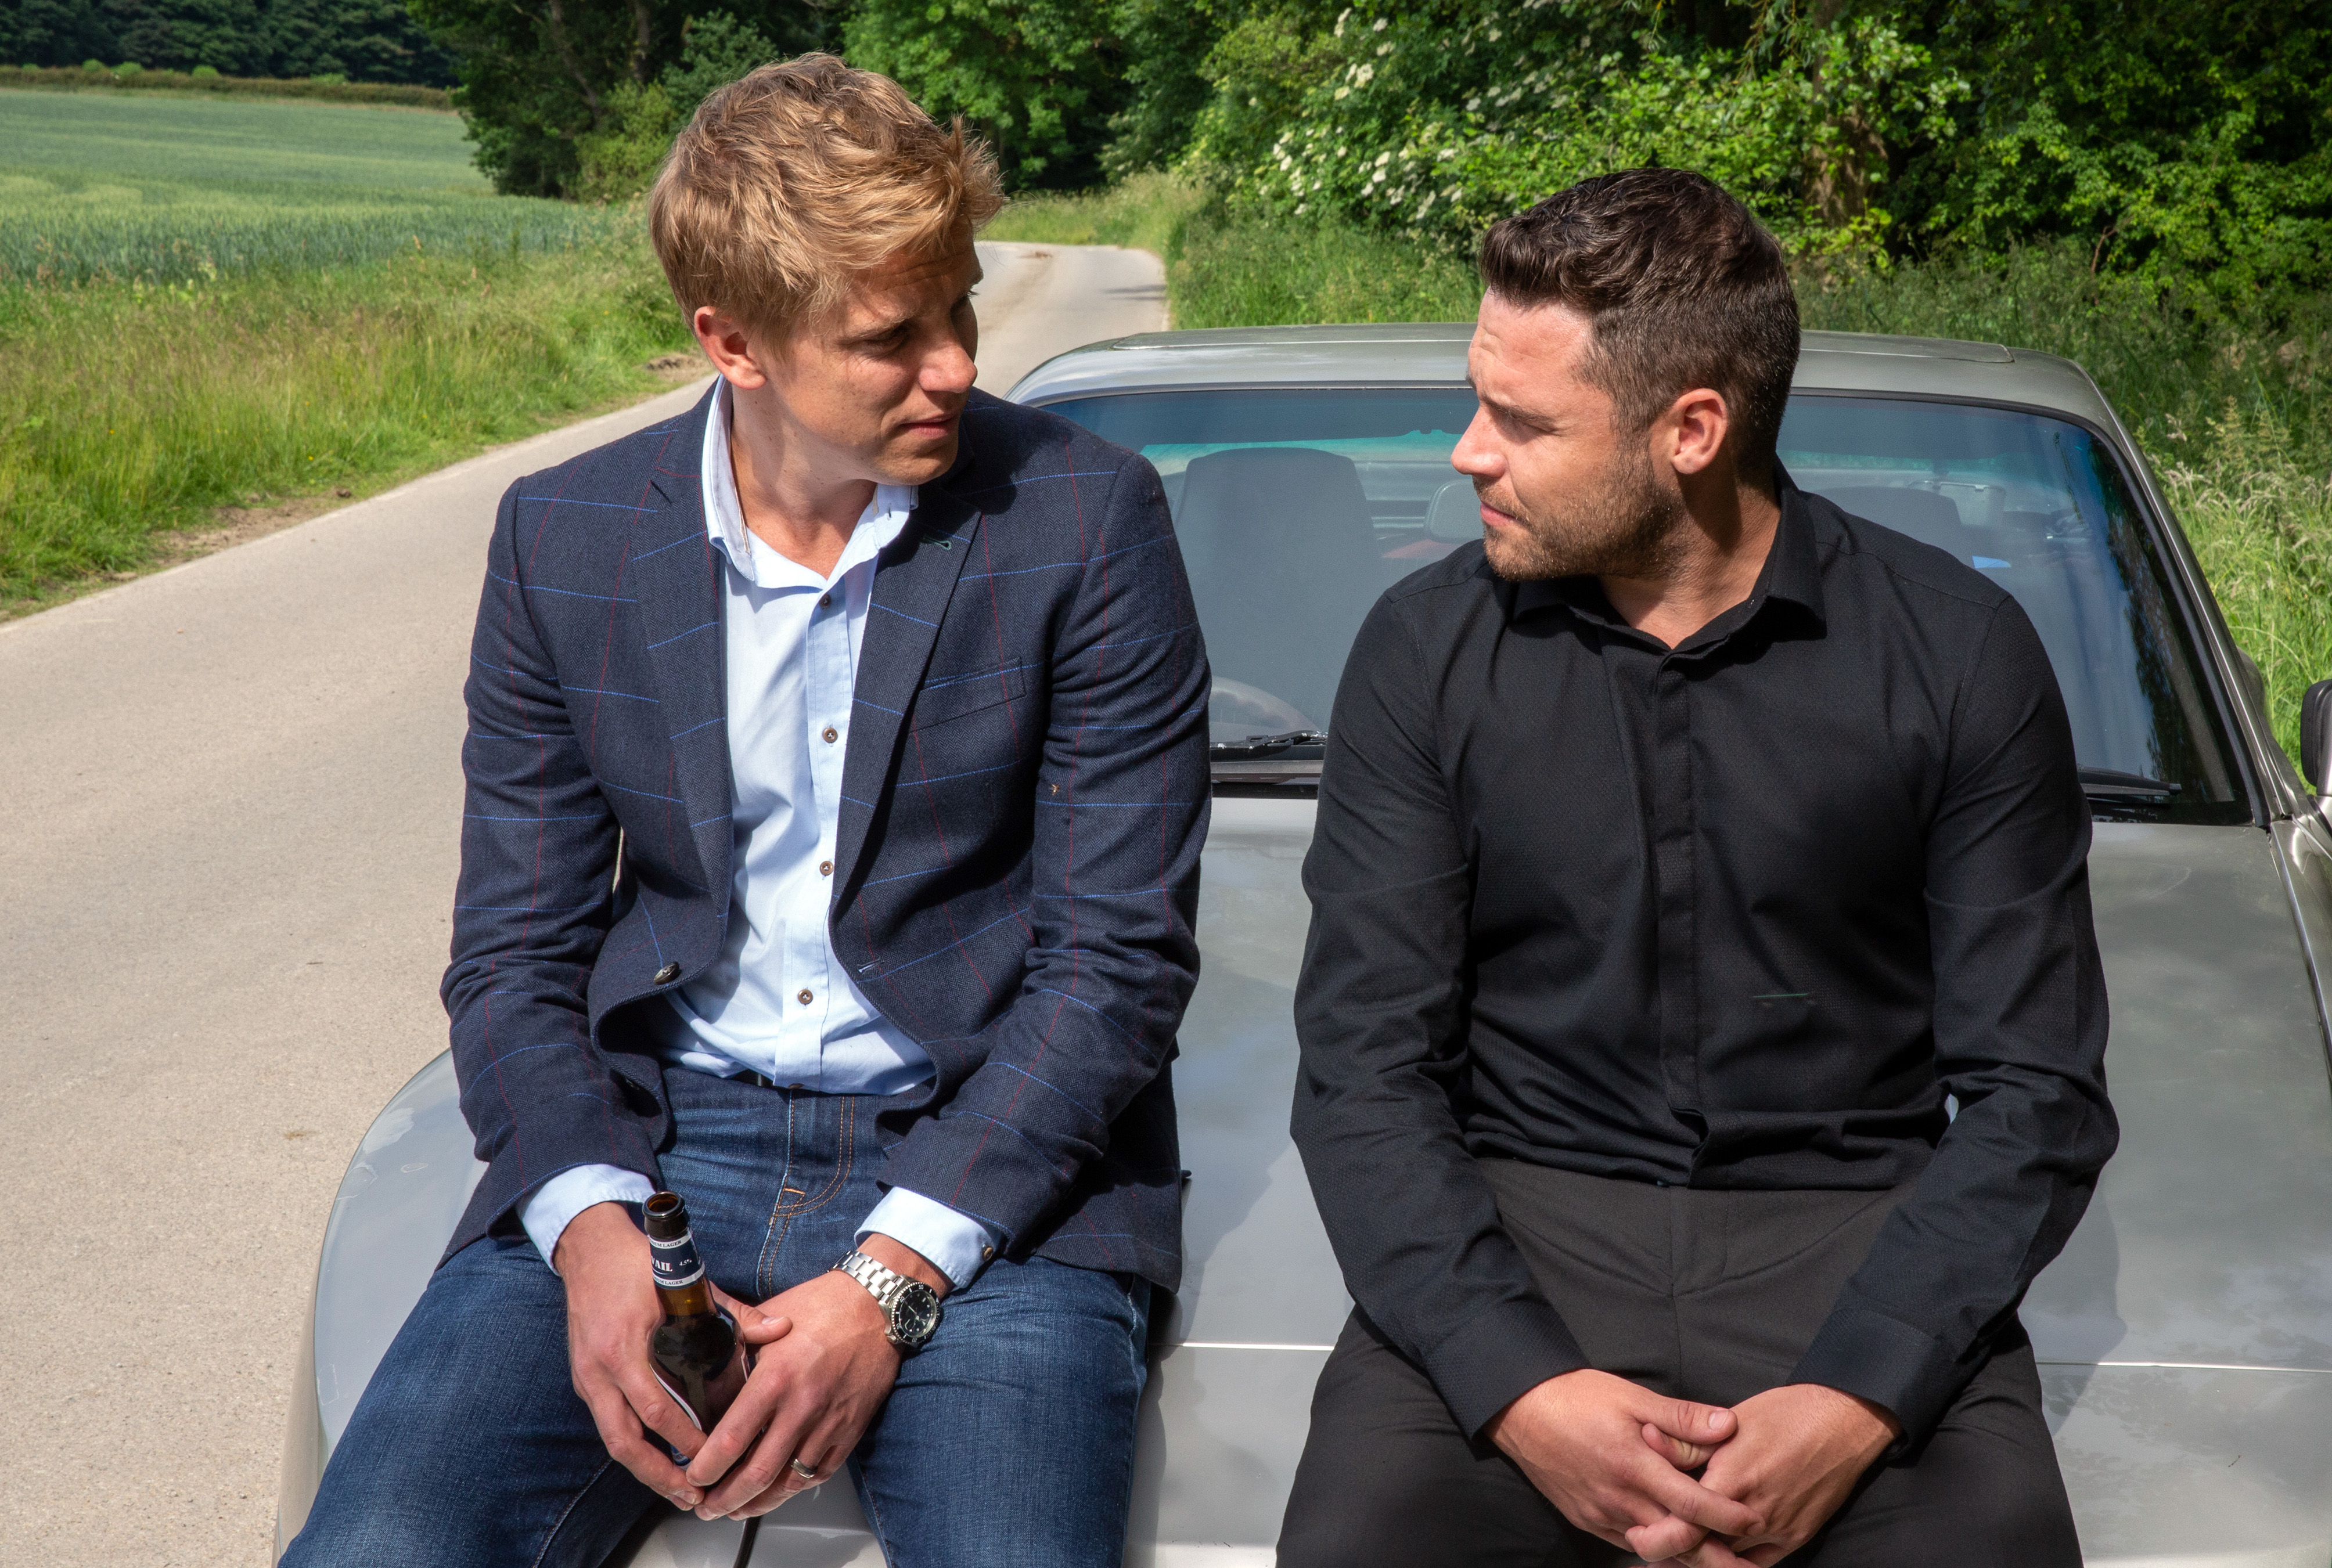 Emmerdale spoilers: Aaron Dingle plans to propose to Robert Sugden